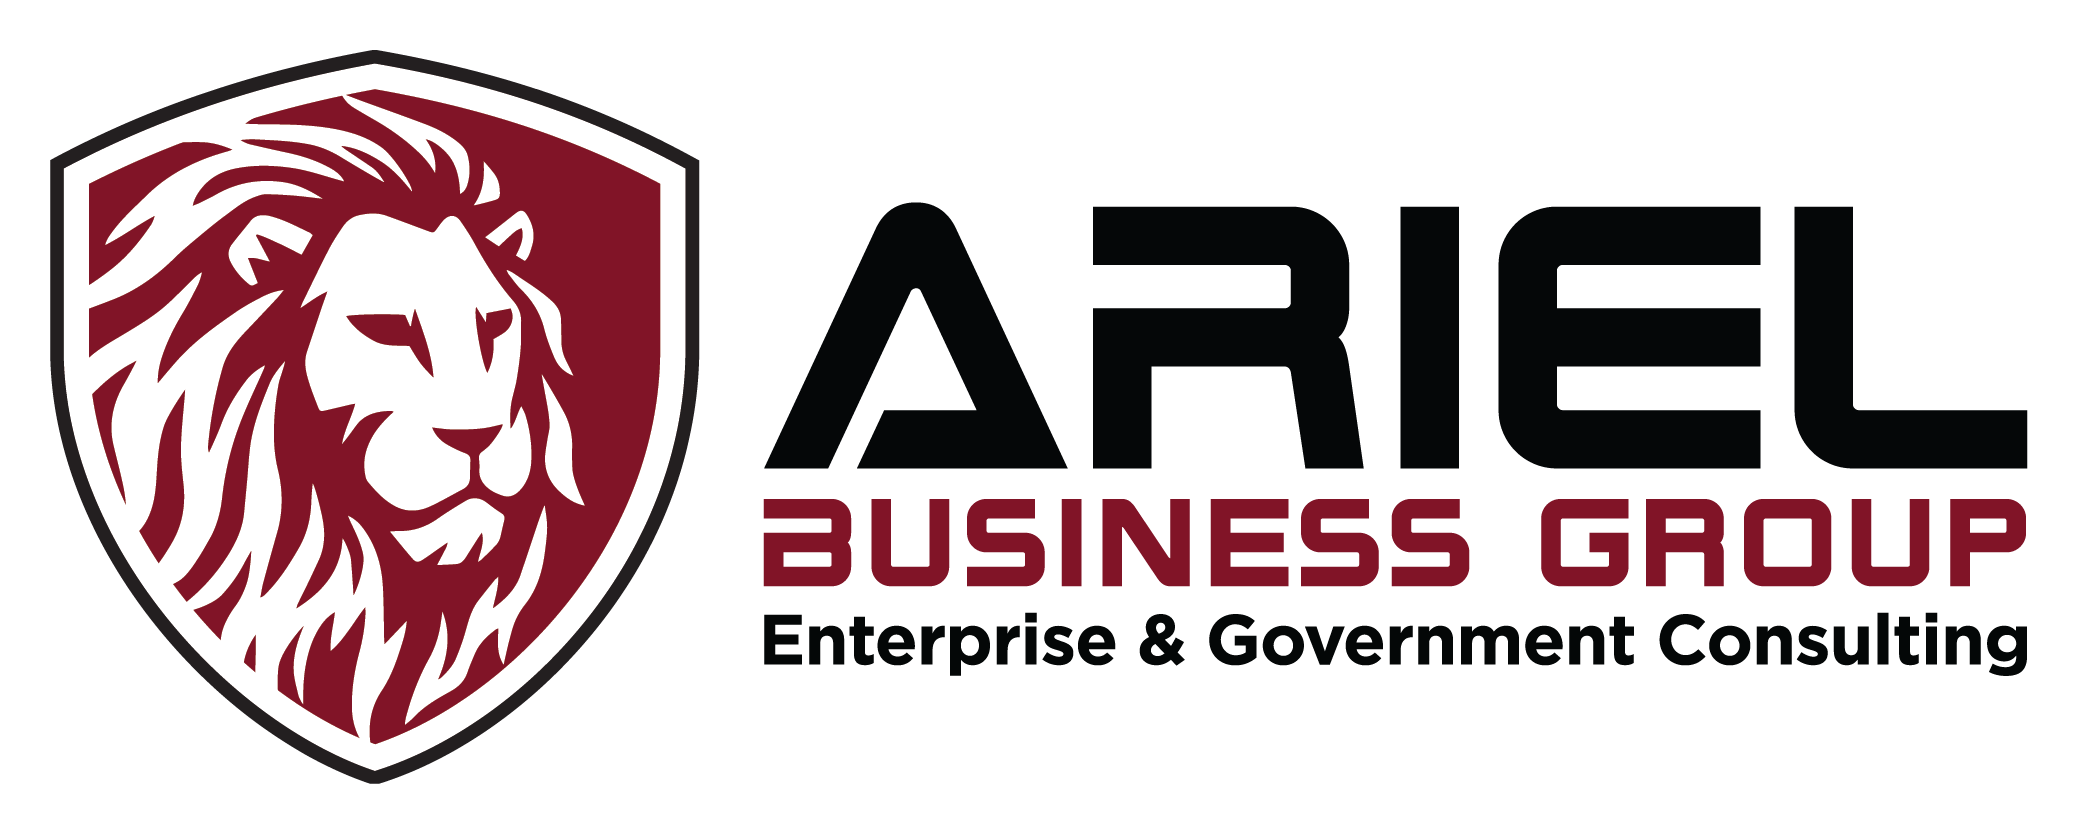 Ariel Business Group